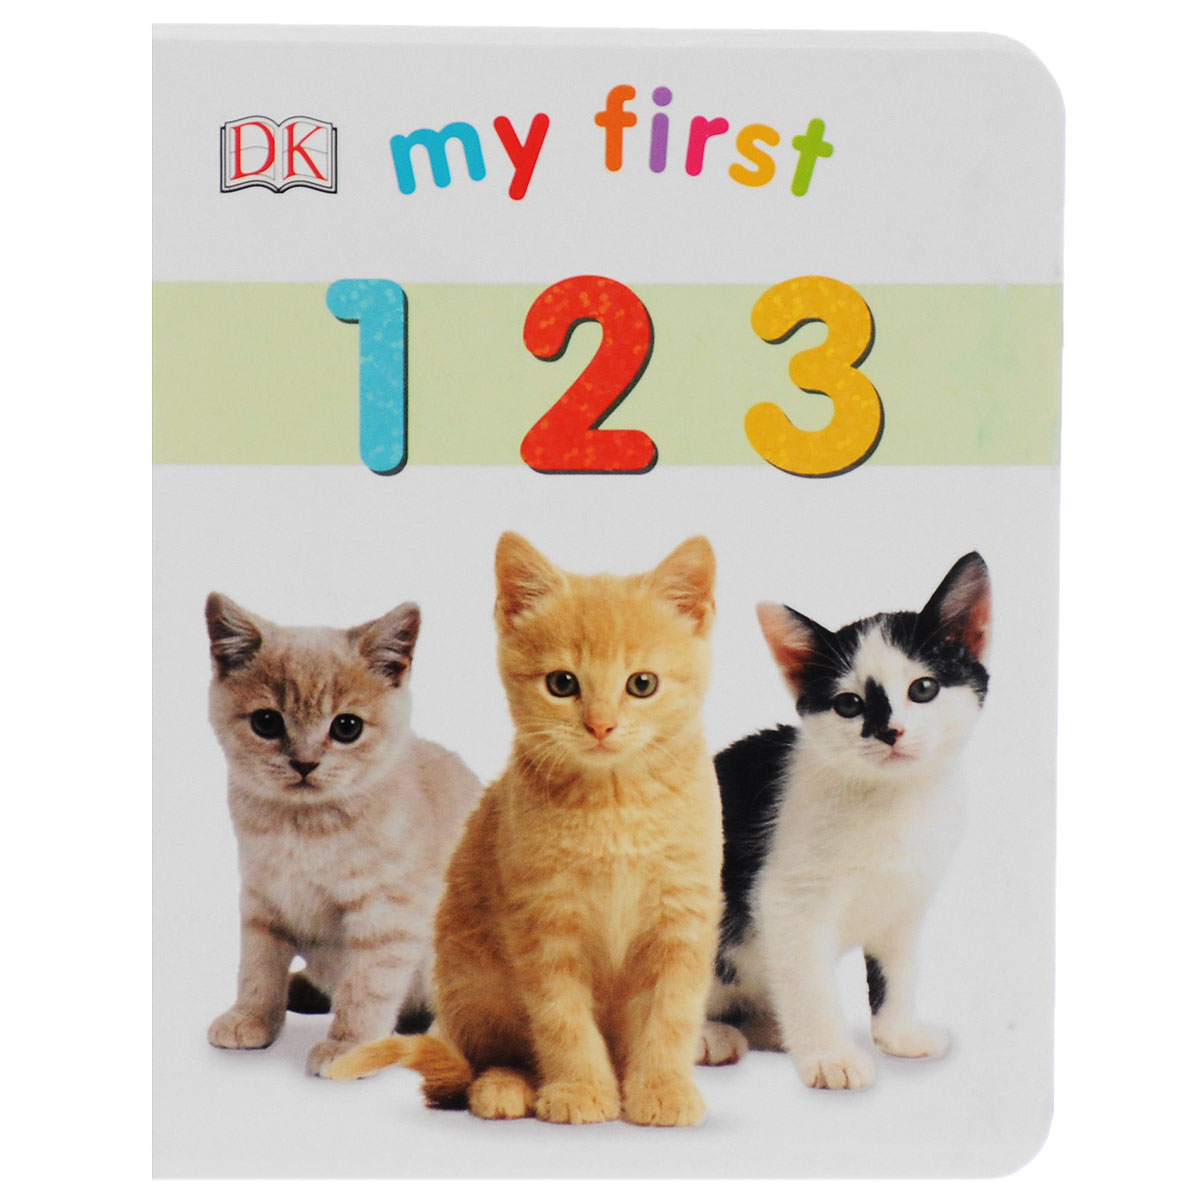 My First: 1 2 3 numbers 1 2 3